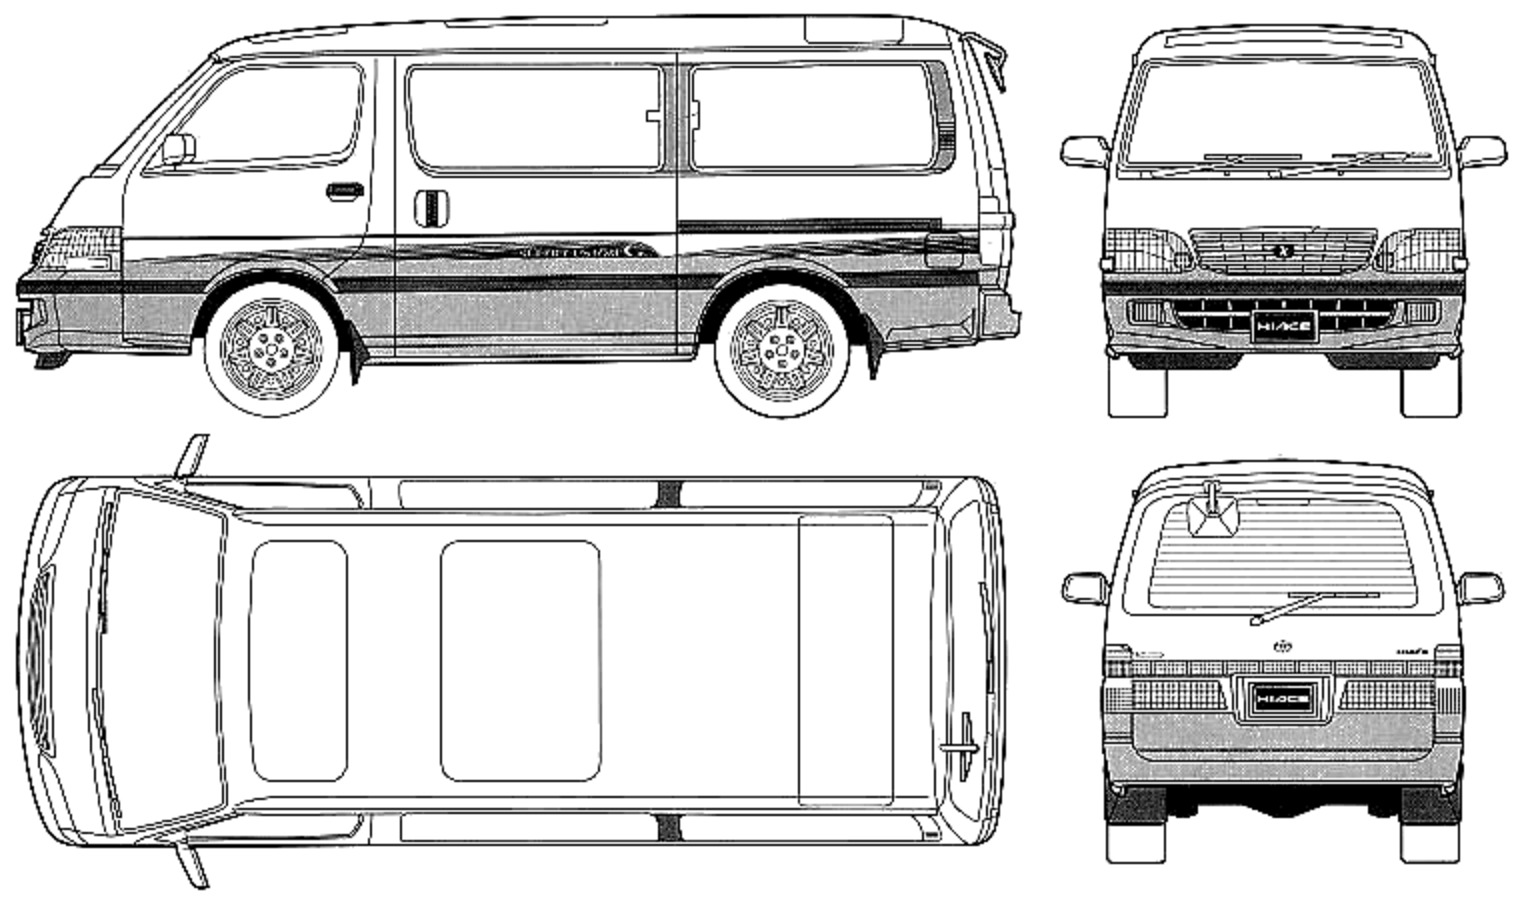 hight resolution of toyota hiace super custom wagon view download wallpaper 757x449 comments